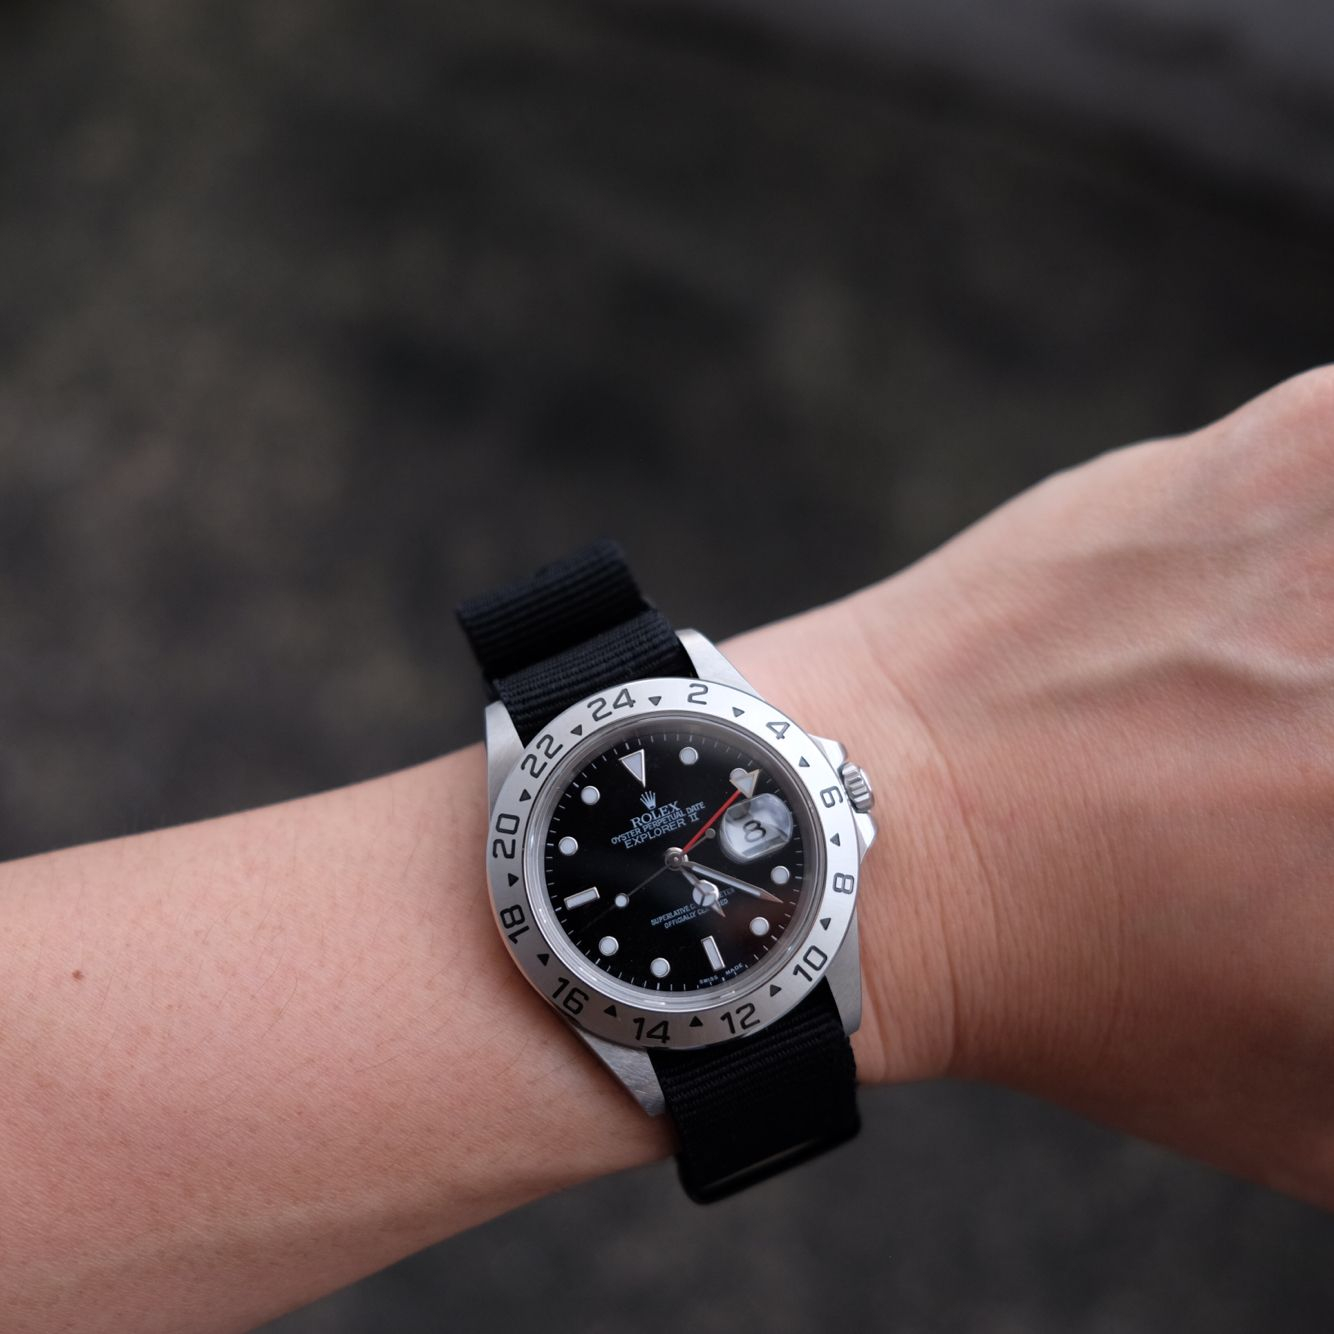 With Nato strap Black color with anodized buckles